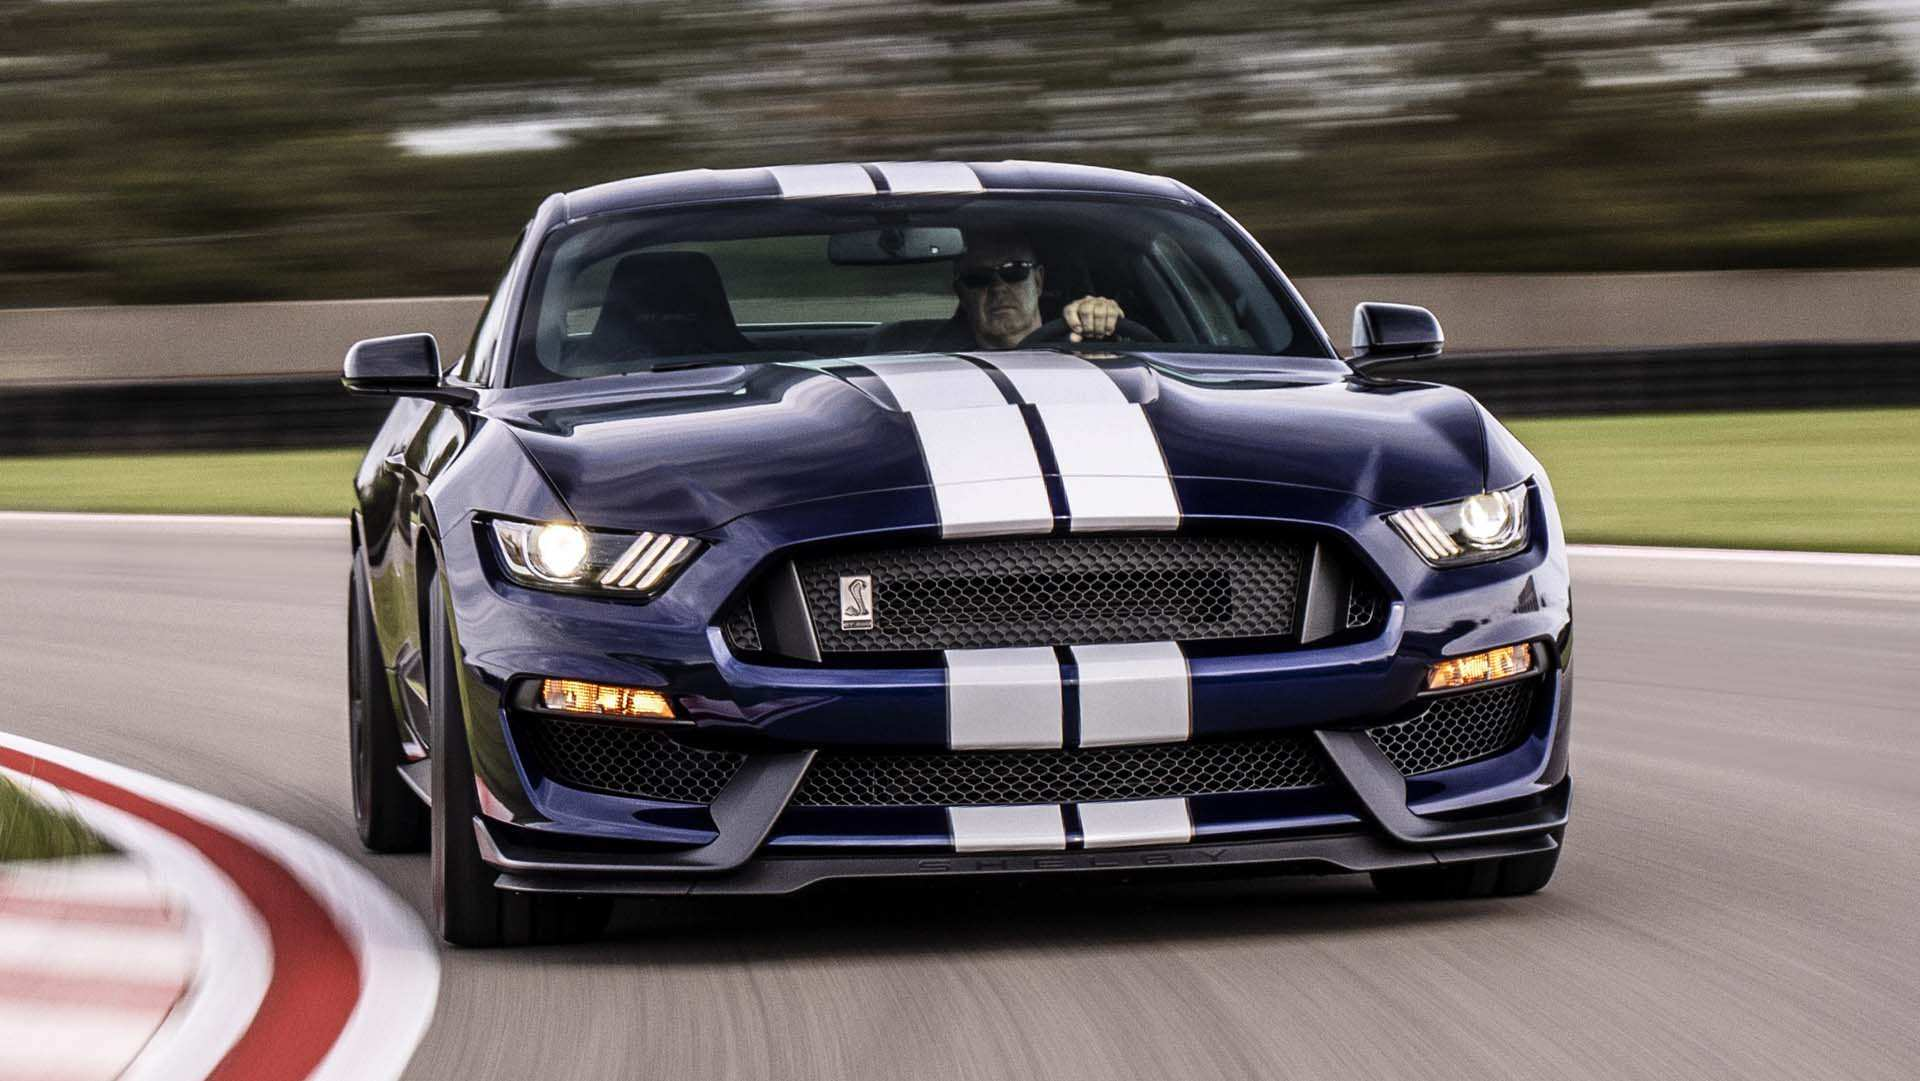 80 All New 2019 Ford Mustang Gt350 Wallpaper